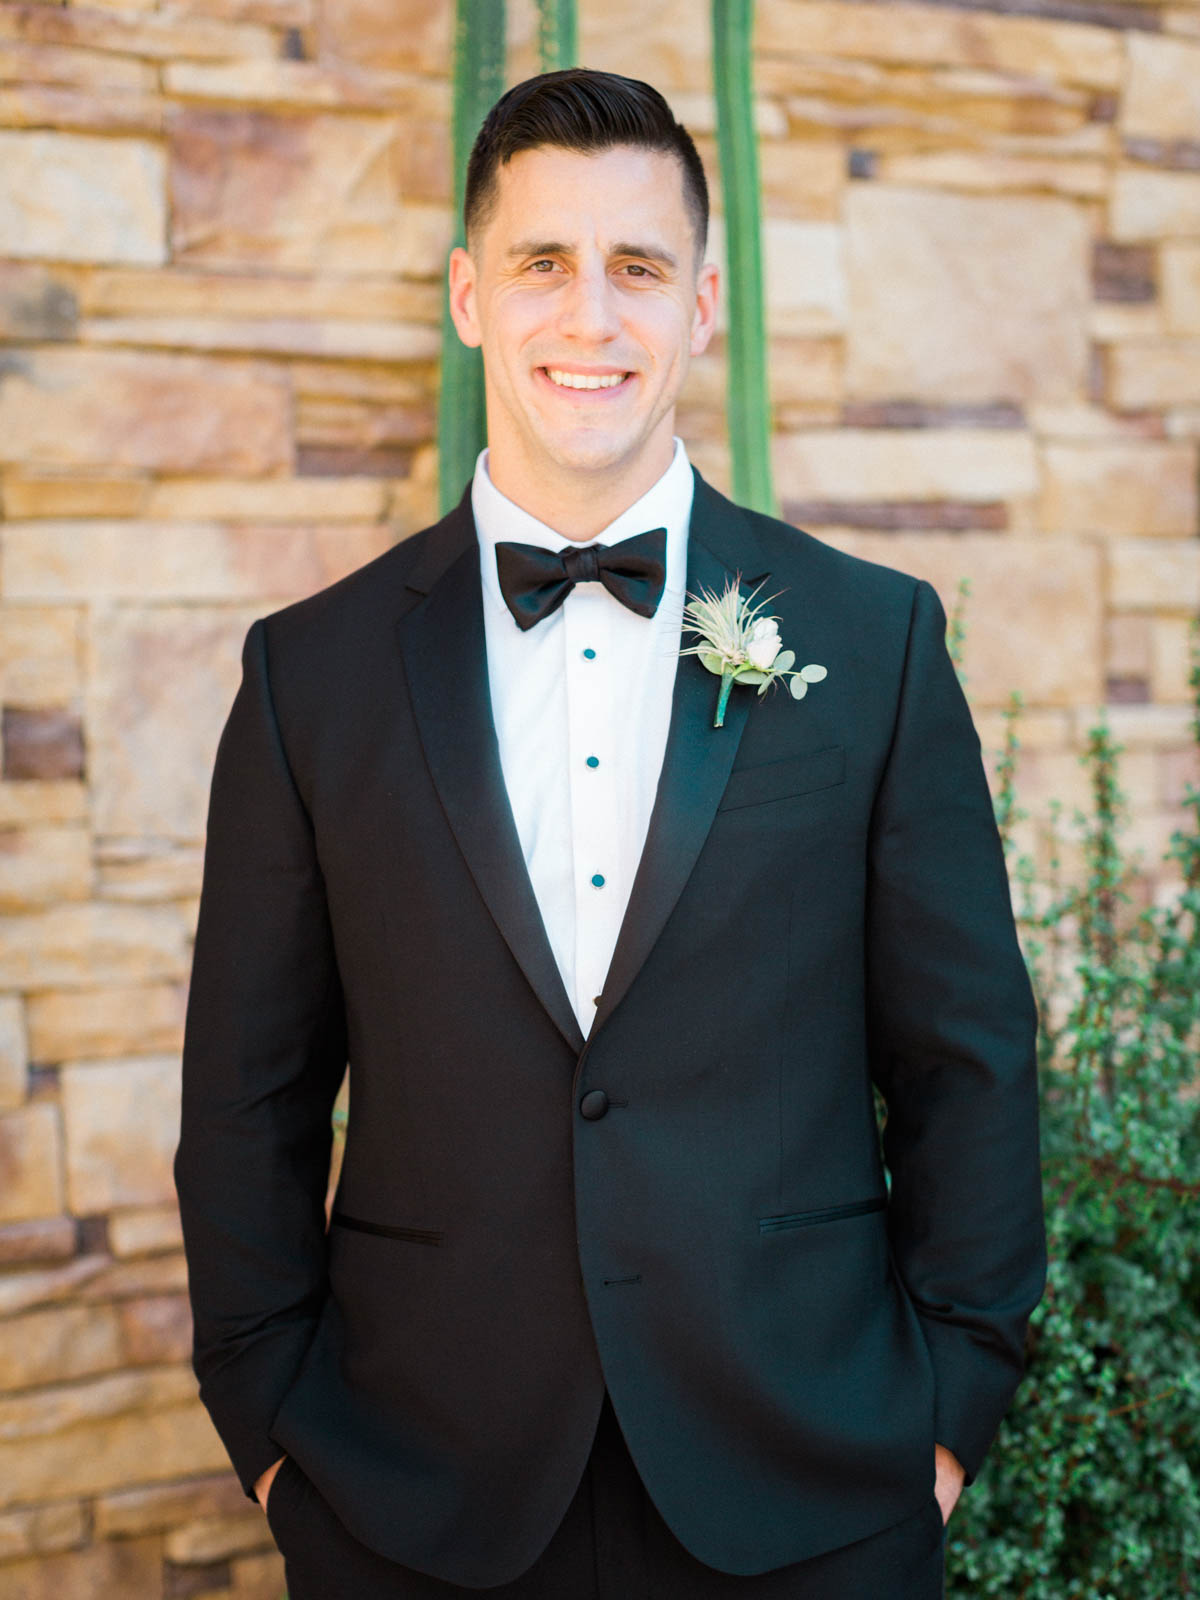 Handsome groom in black tux captured by Tucson Wedding Photographers Betsy & John